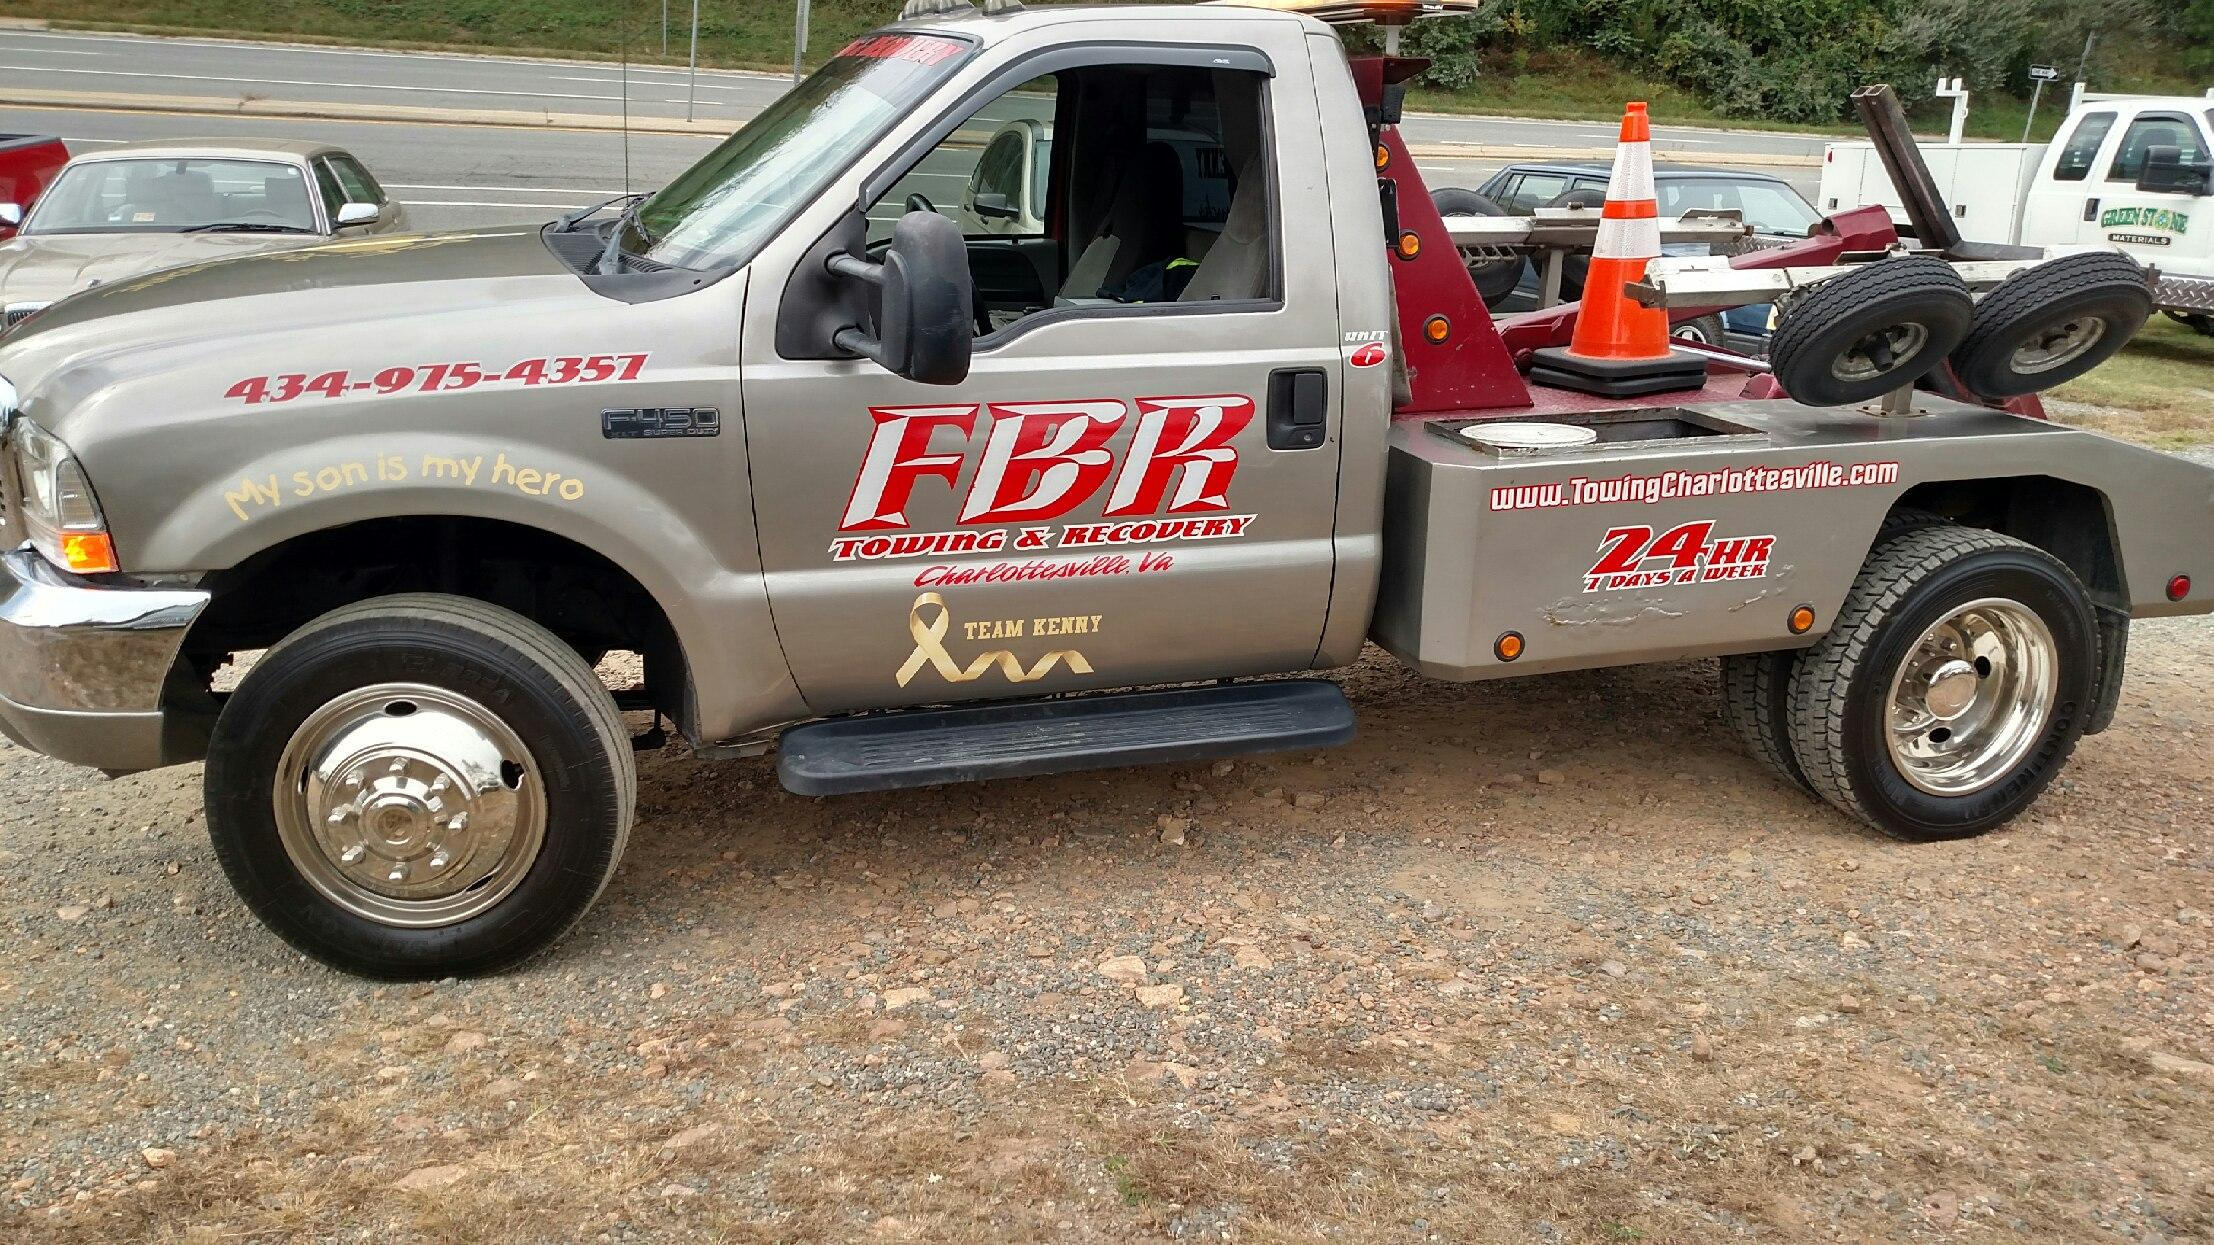 Tow Truck Fbr Towing Recovery Towing Charlottesville Tow Trucks